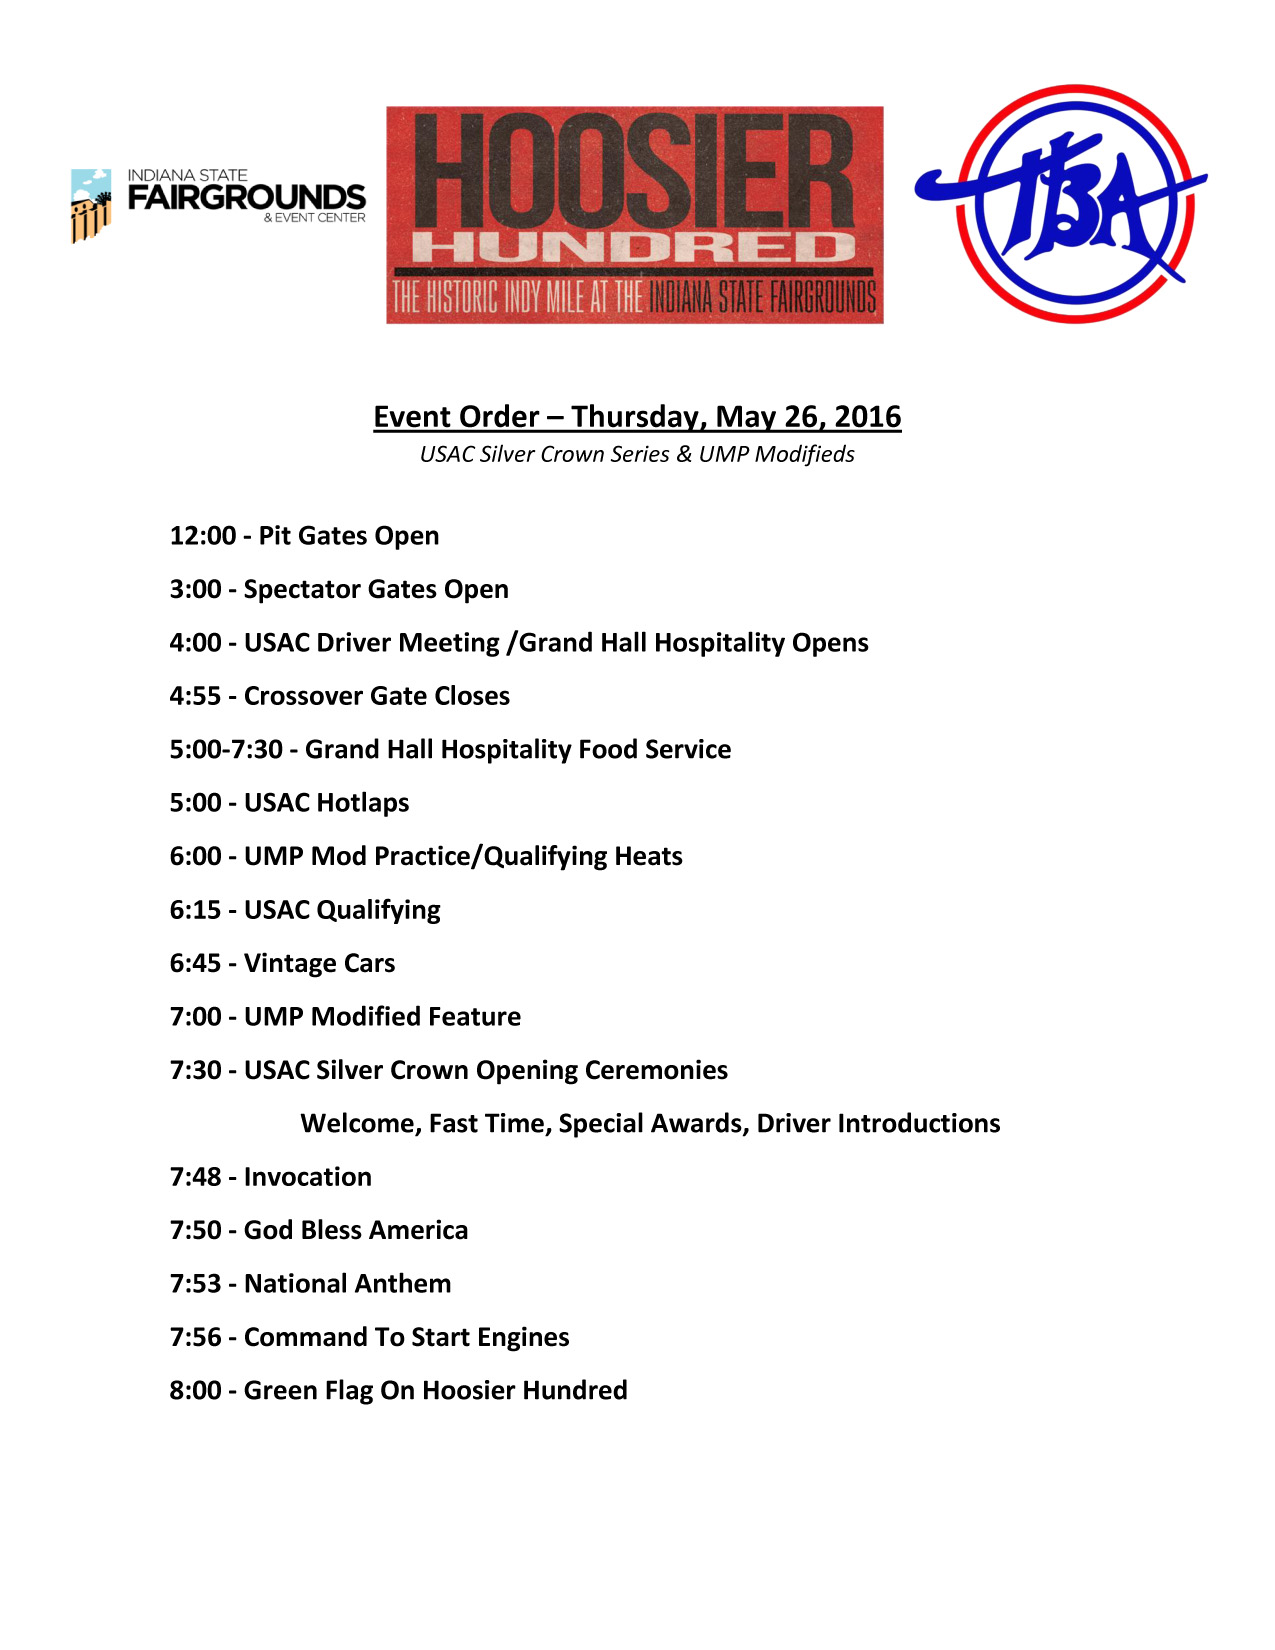 Hoosier Hundred 2016 Detailed Schedule